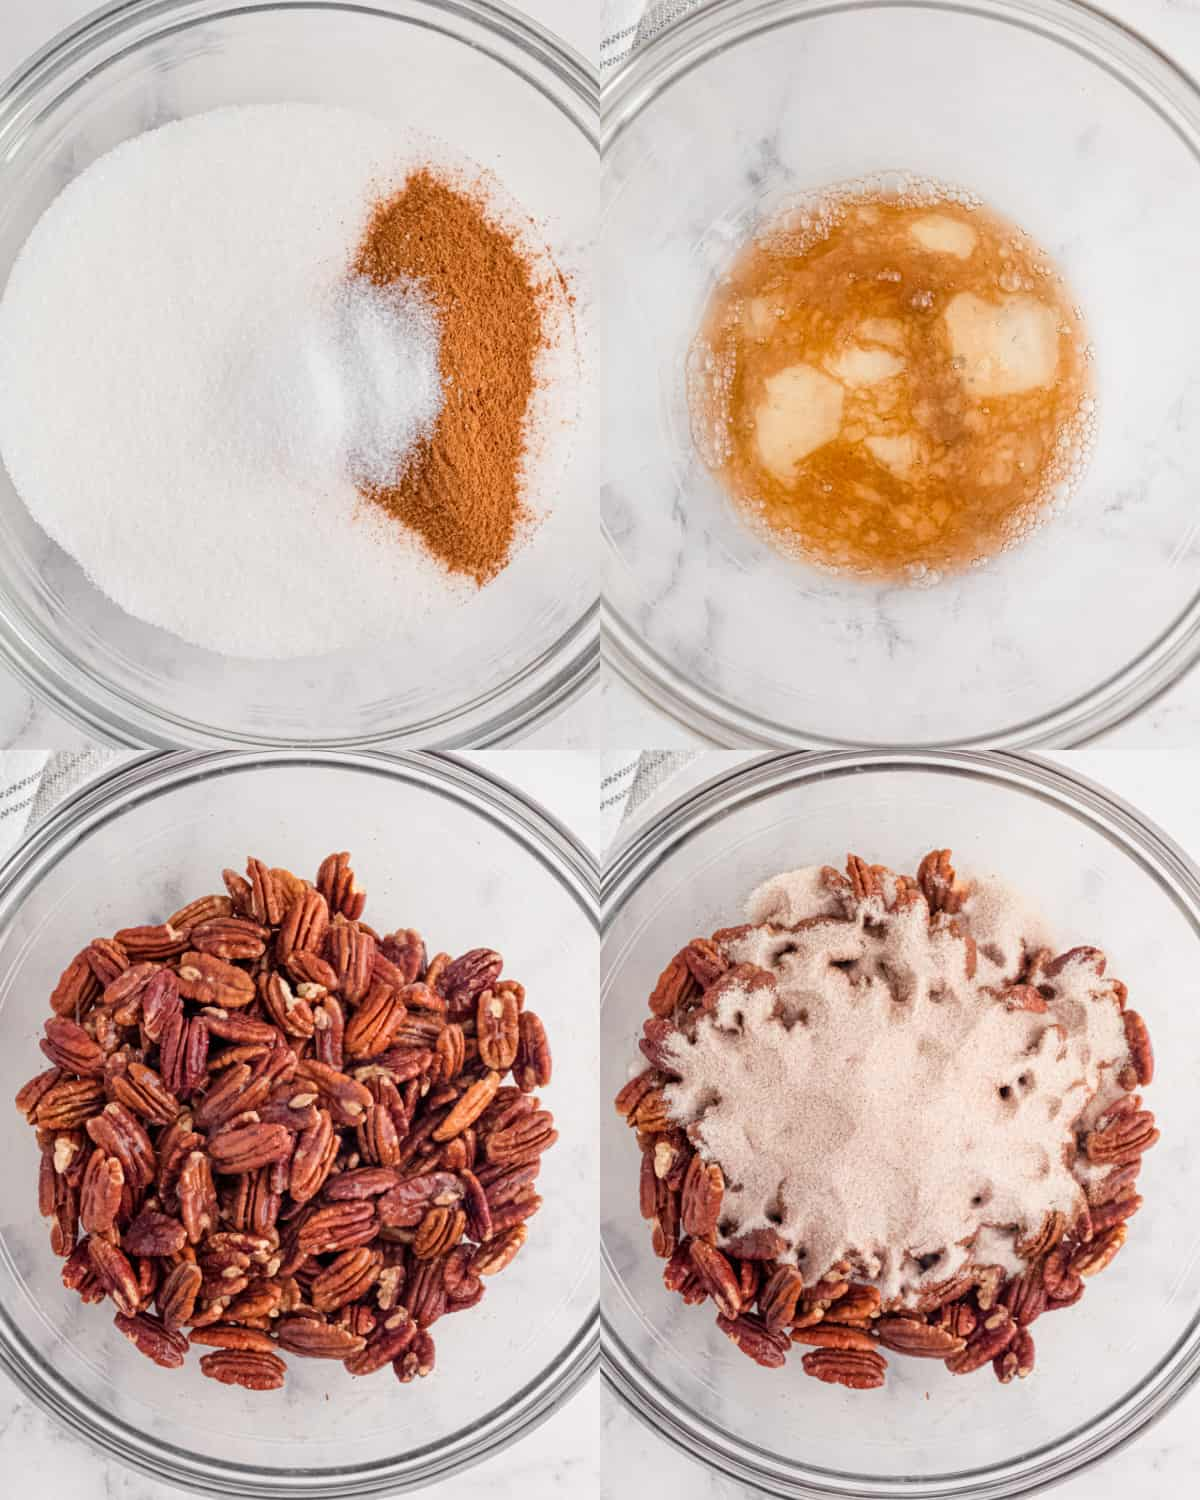 mixing ingredients for candied pecans in a bowl